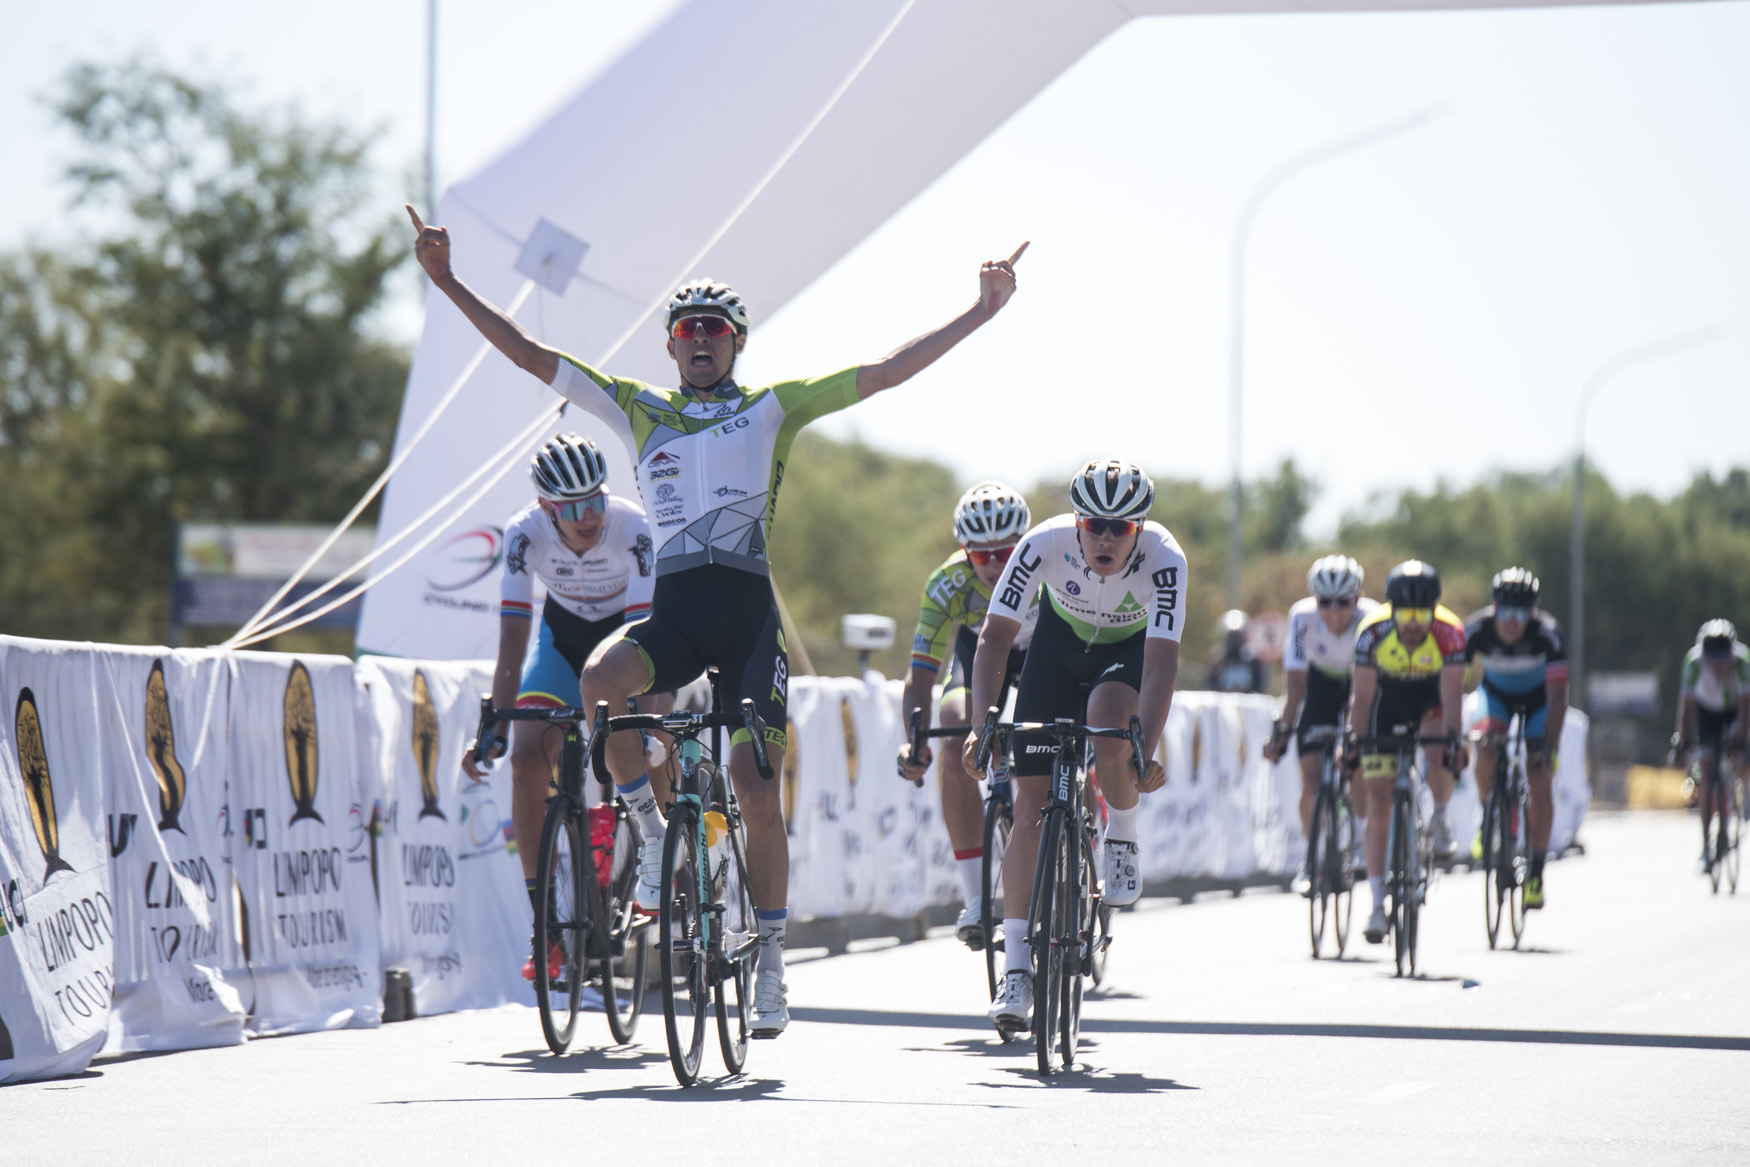 The look of victory when Gustav Basson (TEG Continental) crosses the finish line to take the win from Bela Bela to Polokwane on Stage 1 of the 2019 Tour de Limpopo (UCI 2.2) from 14-18 May © Tour de Limpopo/Andrew Mc Fadden